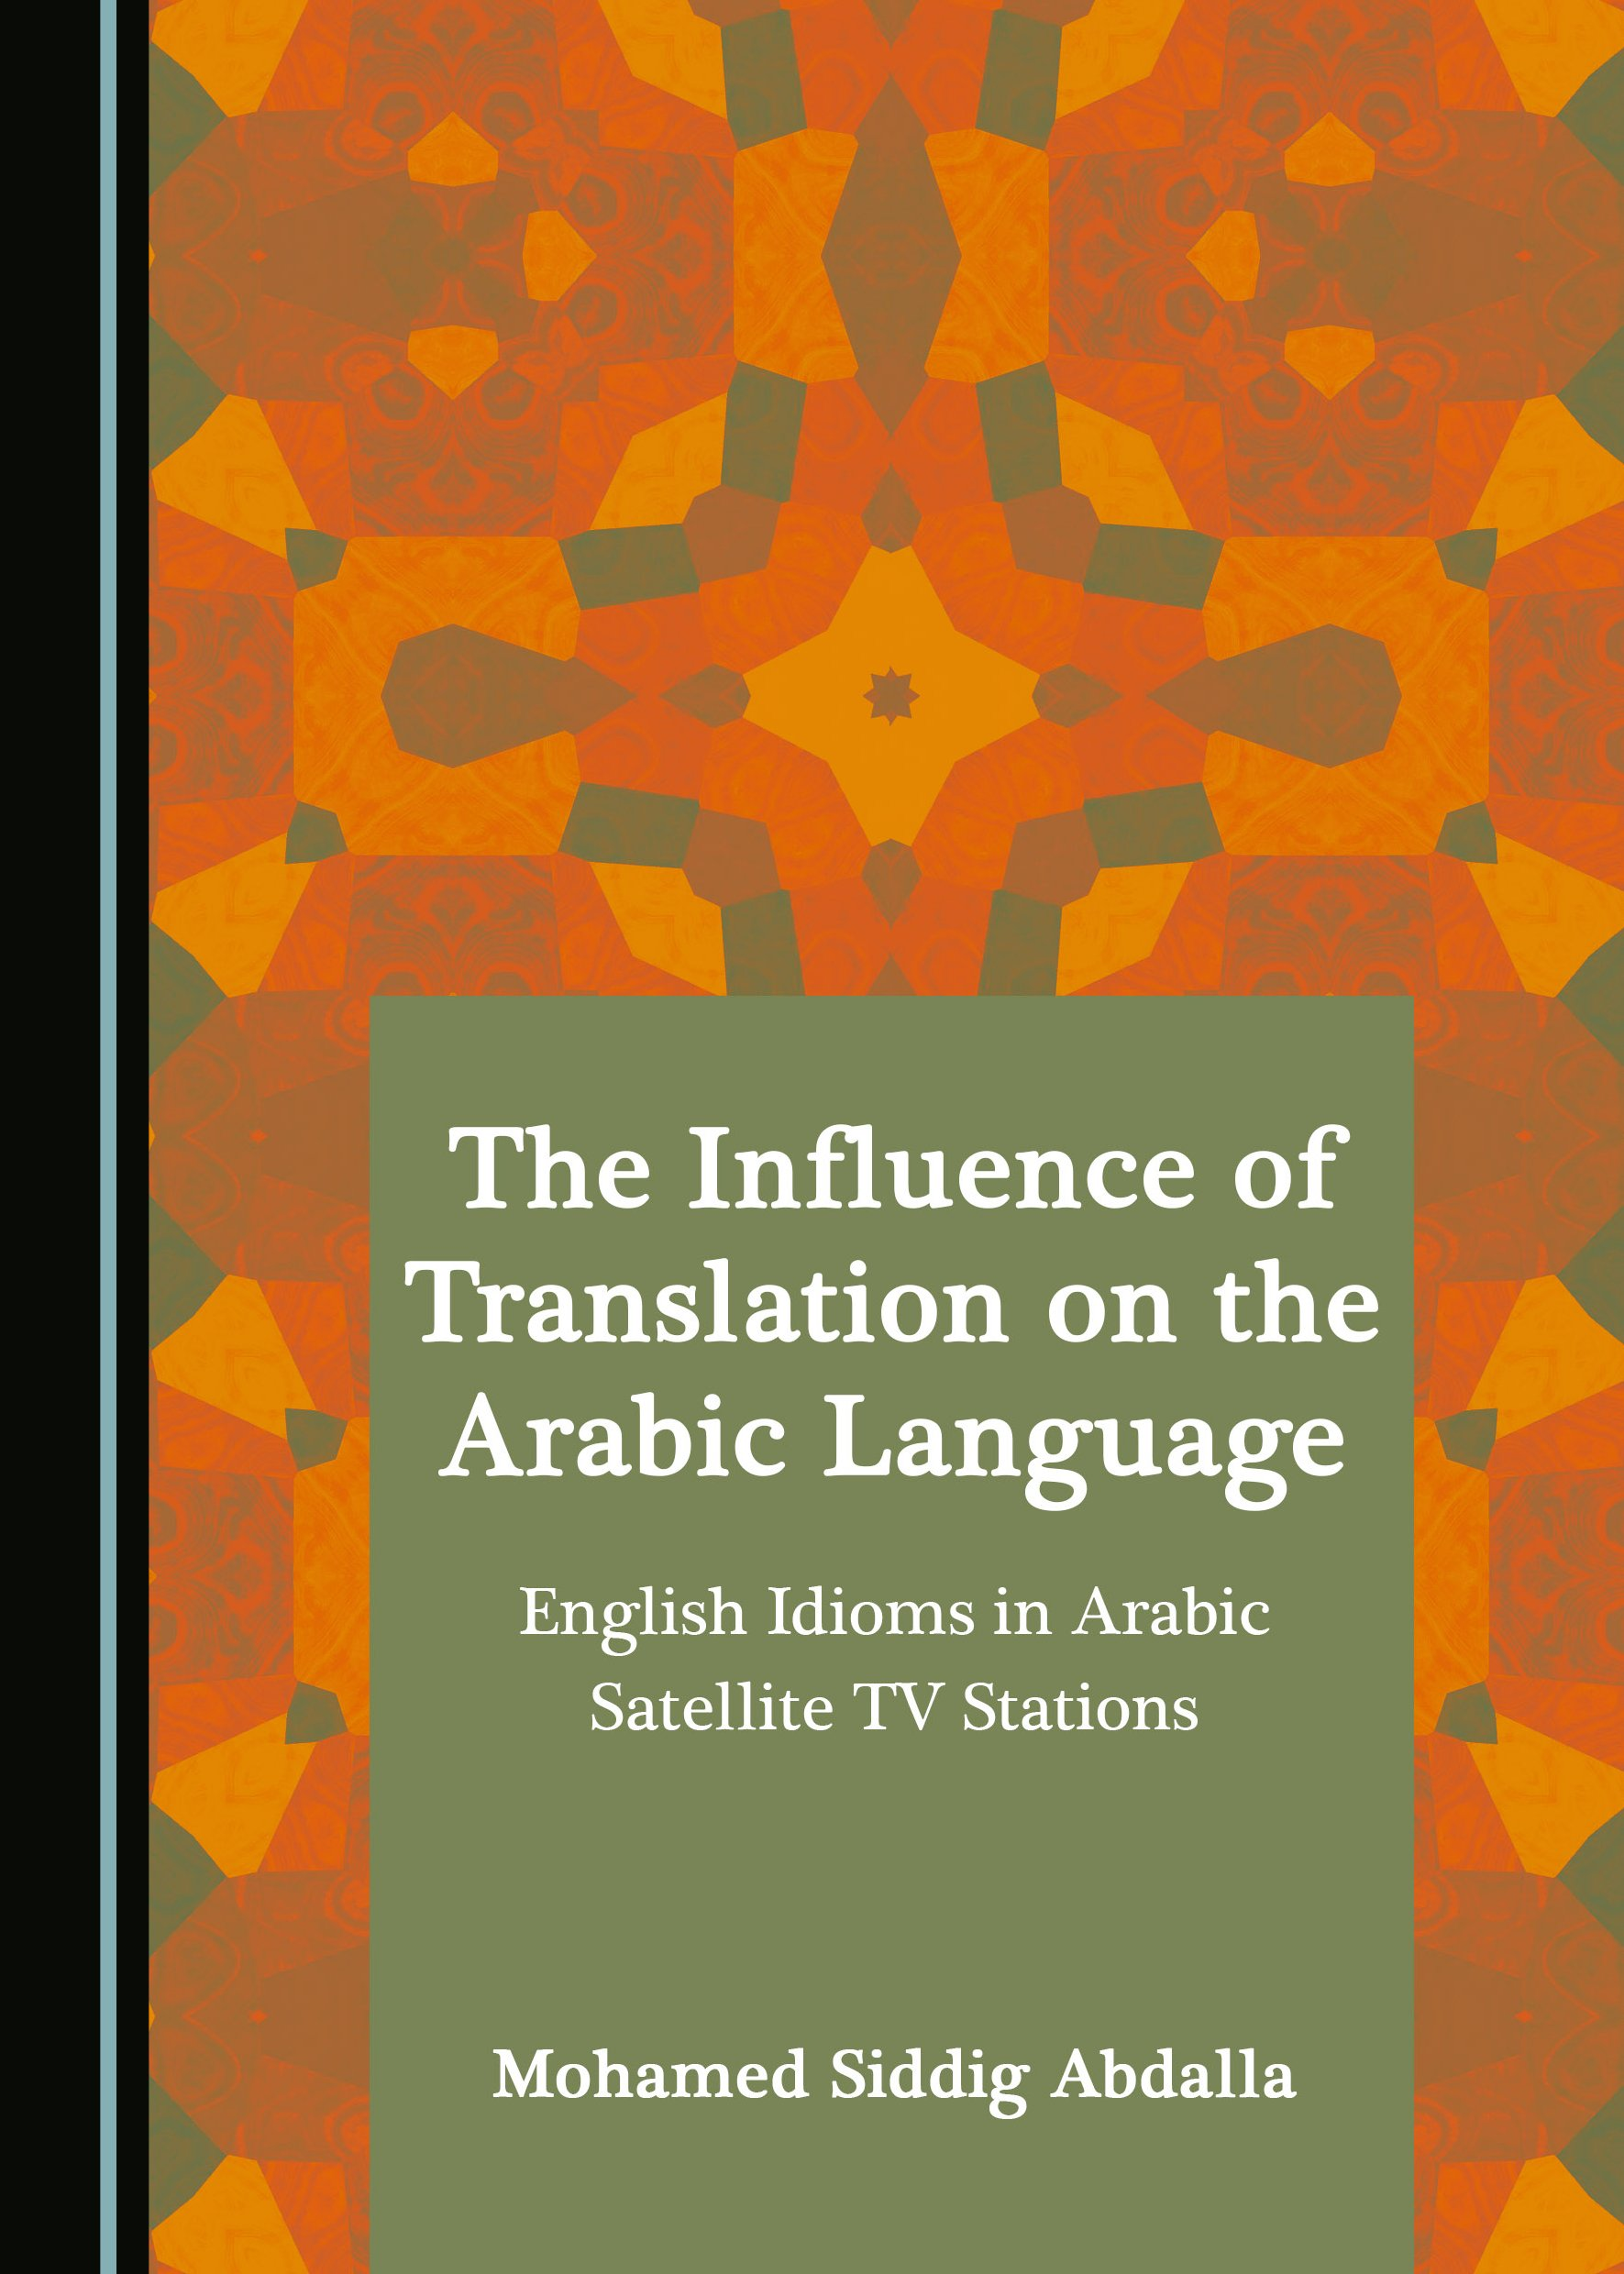 The Influence of Translation on the Arabic Language: English Idioms in Arabic Satellite TV Stations